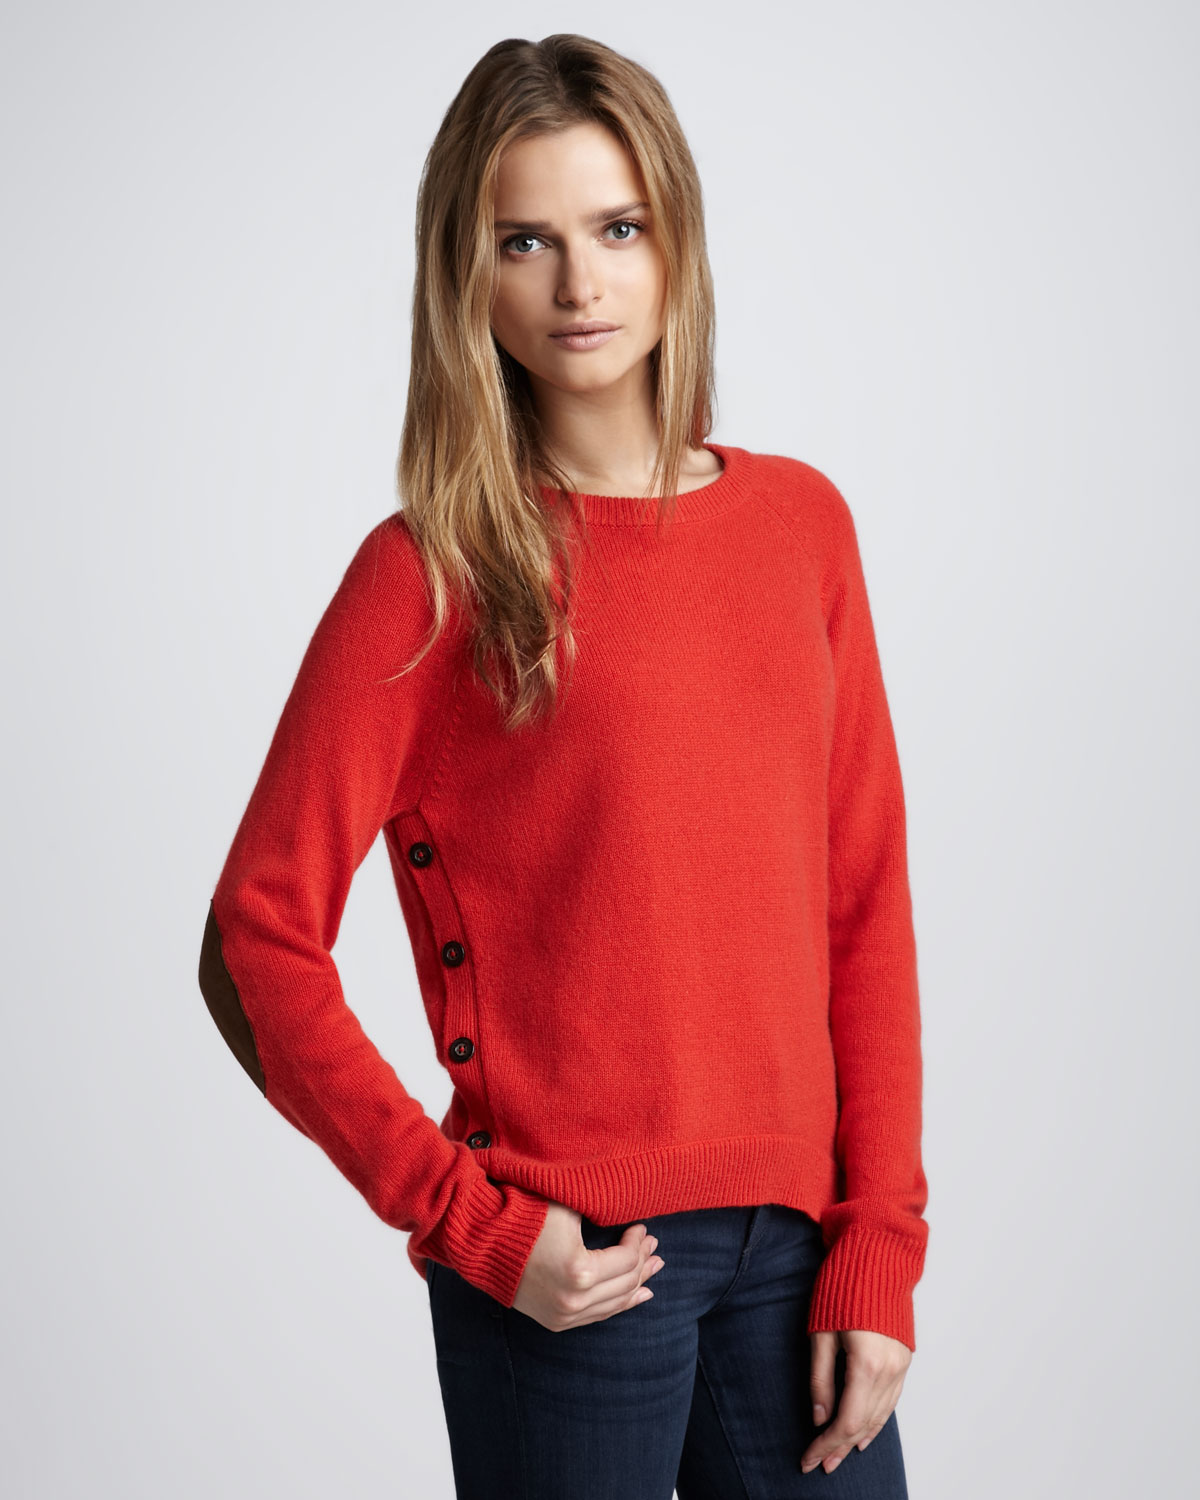 Elbow patch womens sweater